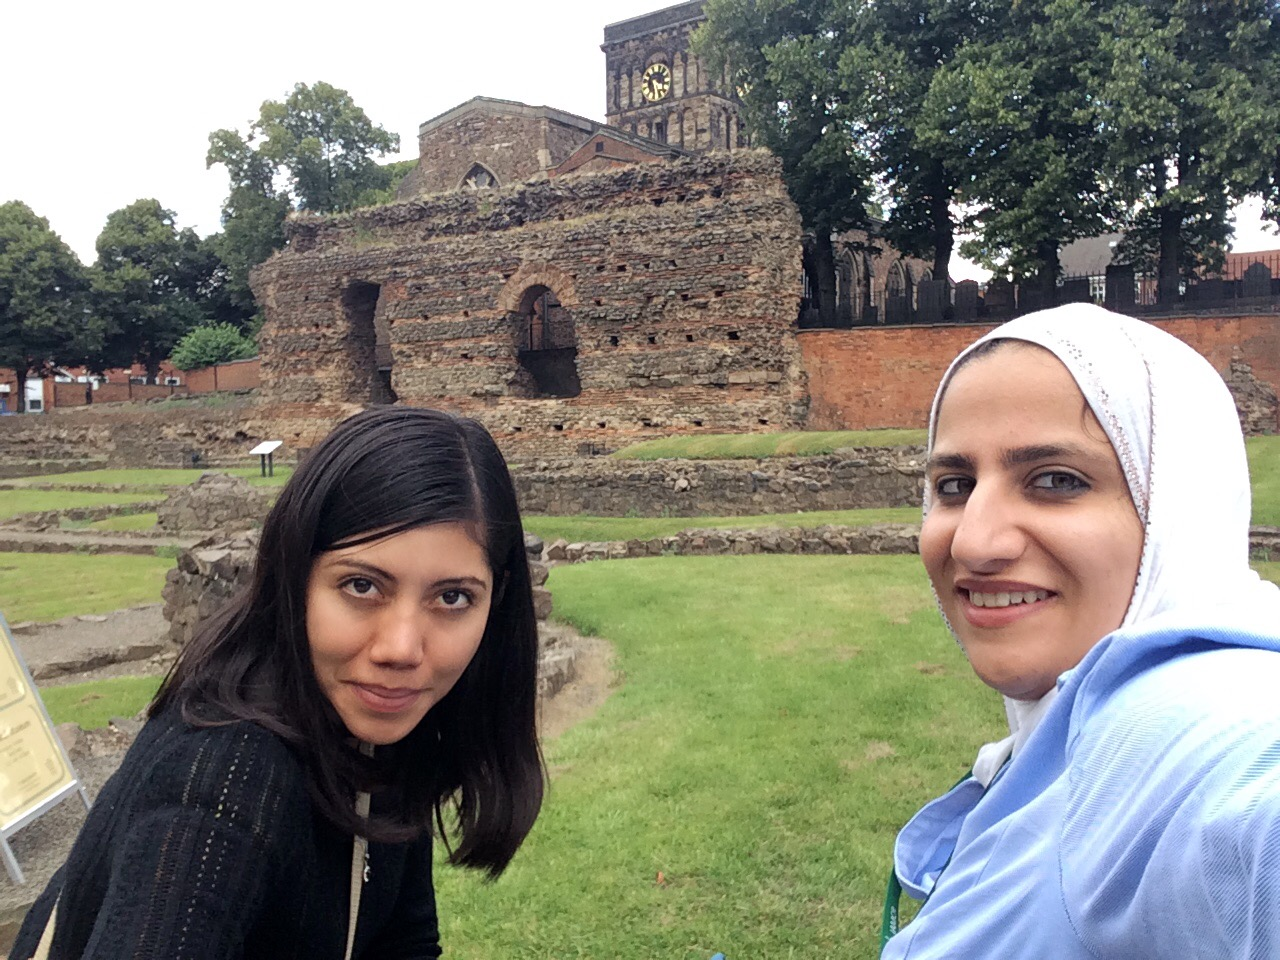 Andrea and friend in front of the baths in Leicester